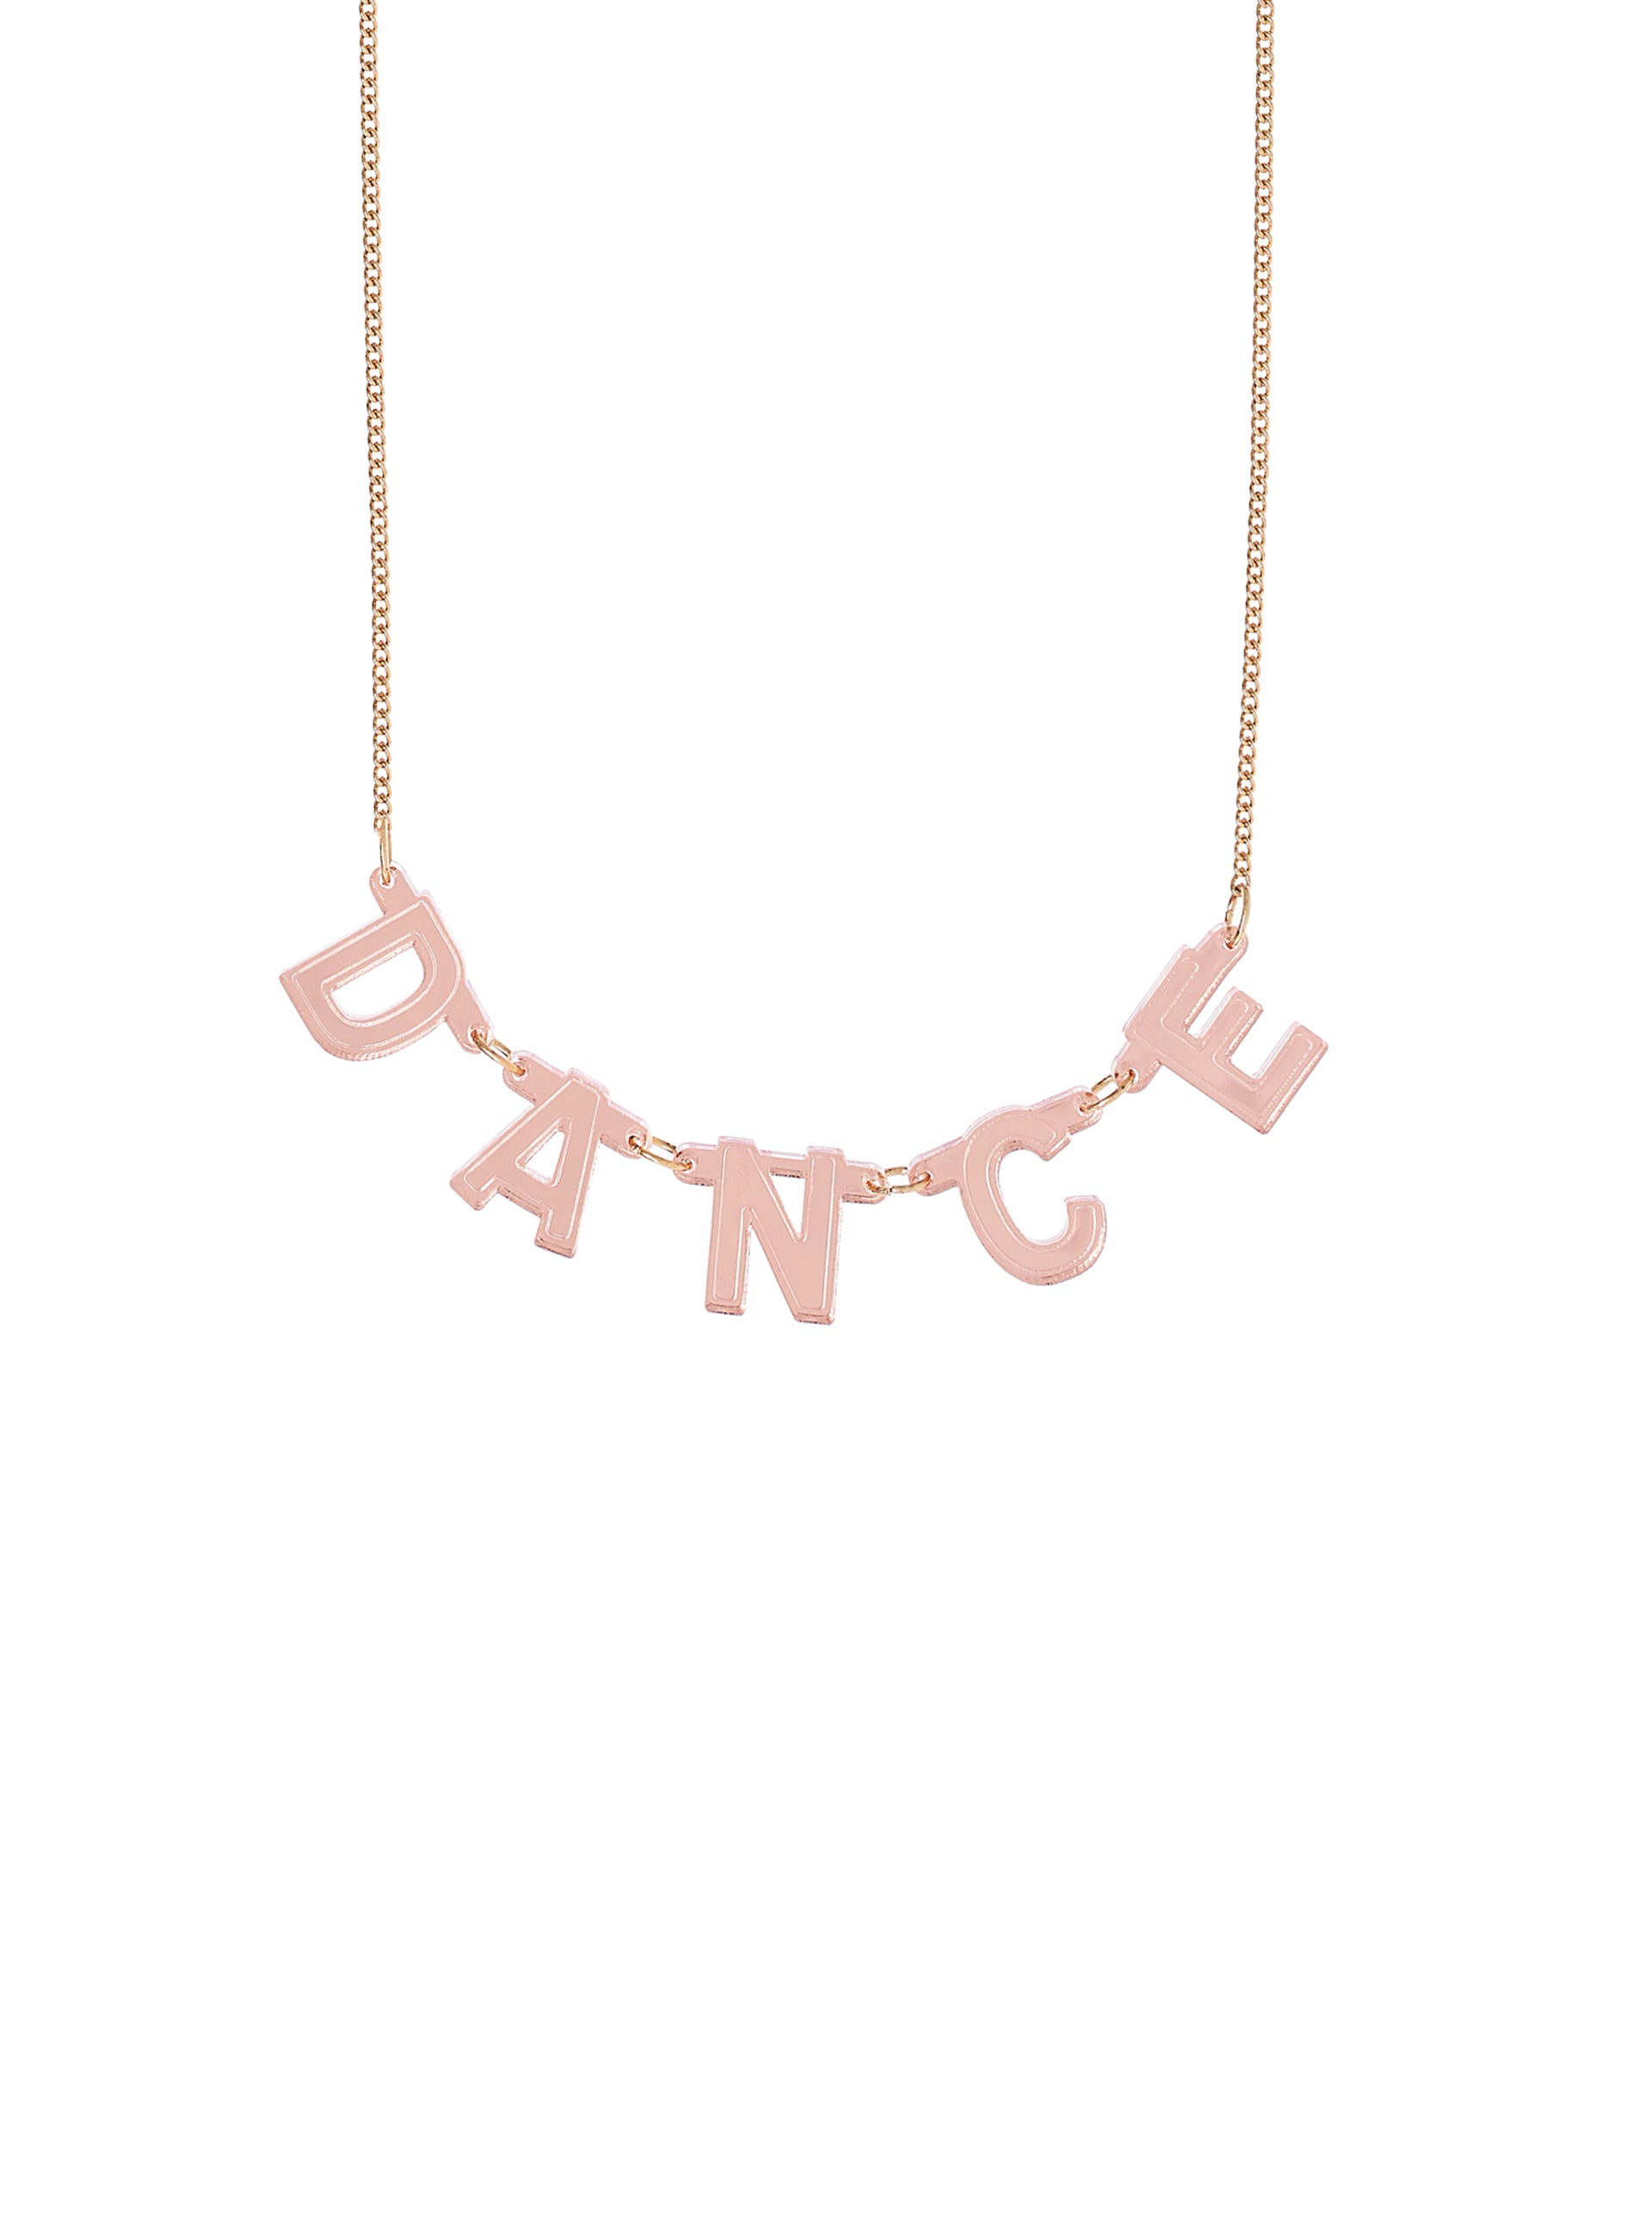 DANCE Foil Banner Necklace